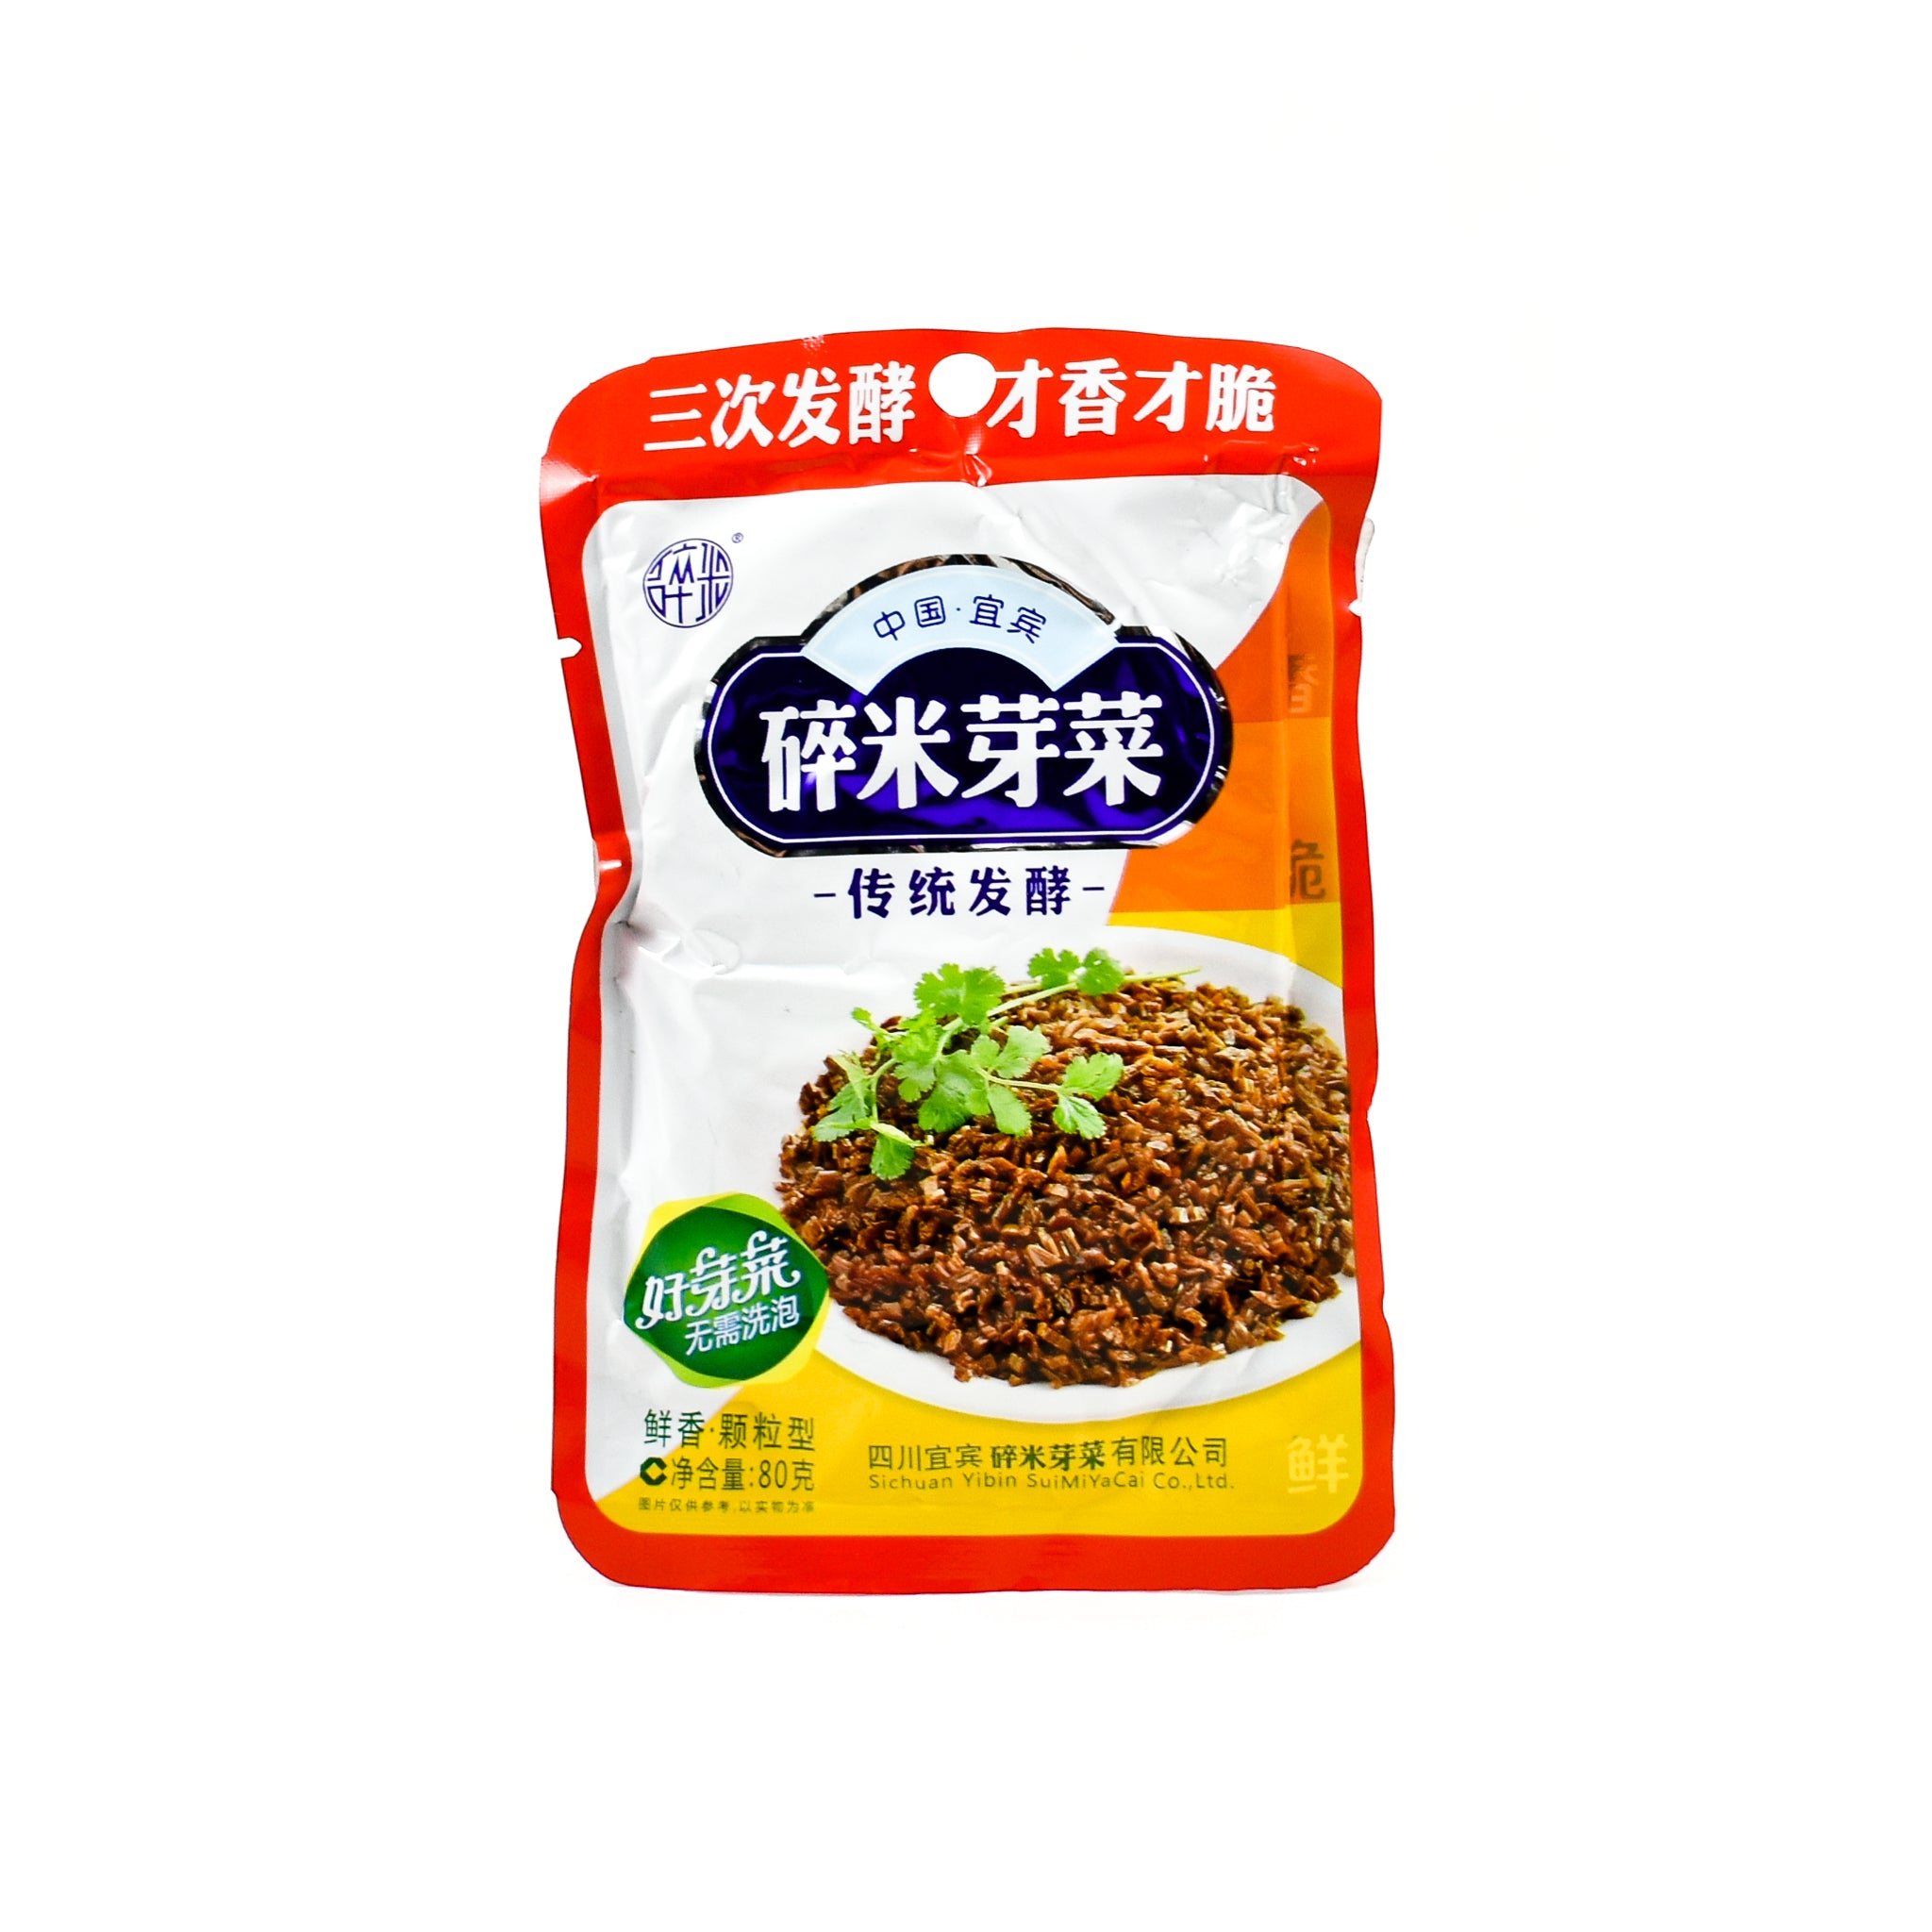 Sichuan Famous Brand Ya Cai - Sichuan Preserved Mustard Greens 5 x 80g Ingredients Pickled & Preserved Vegetables Chinese Food